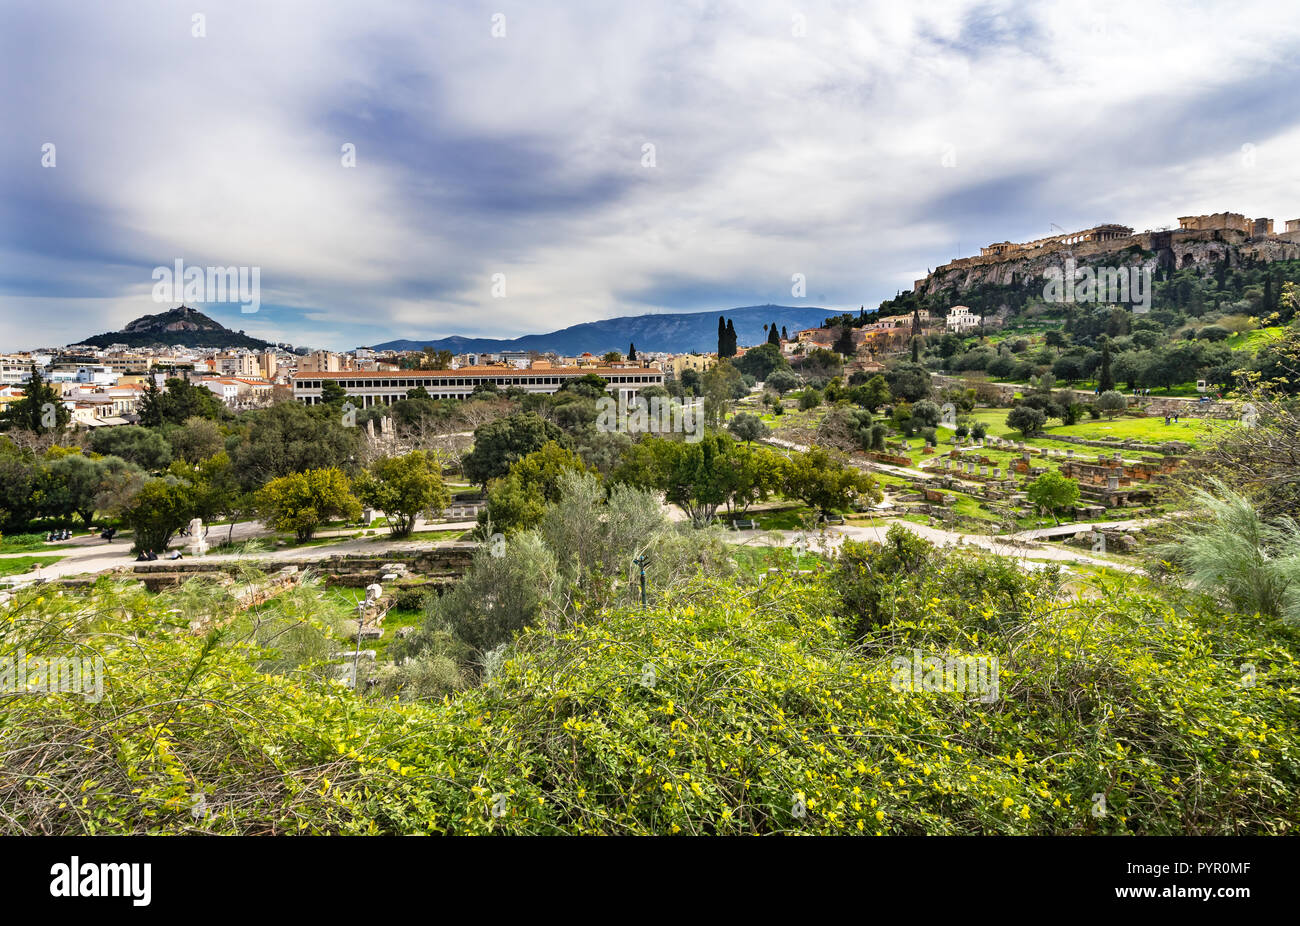 Ancient Agora Market Place Fields Stoa Attalos Parthenon Acropolis Athens Greece. Agora founded 6th Century BC, Parthenon built 438 BC symbol of ancie - Stock Image